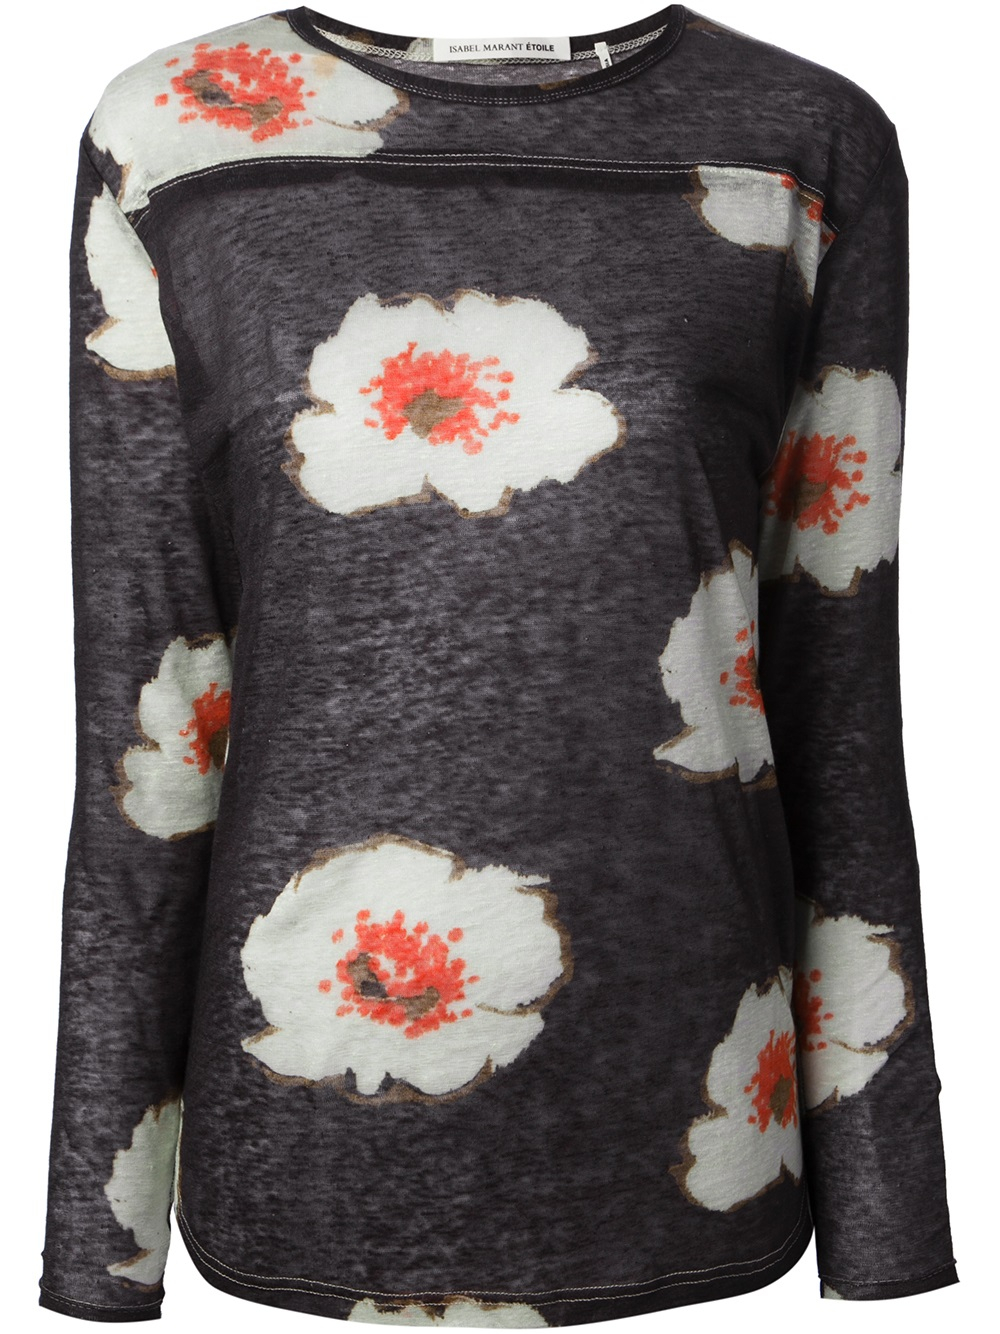 Toile Isabel Marant Jared Floral Print T Shirt In Black